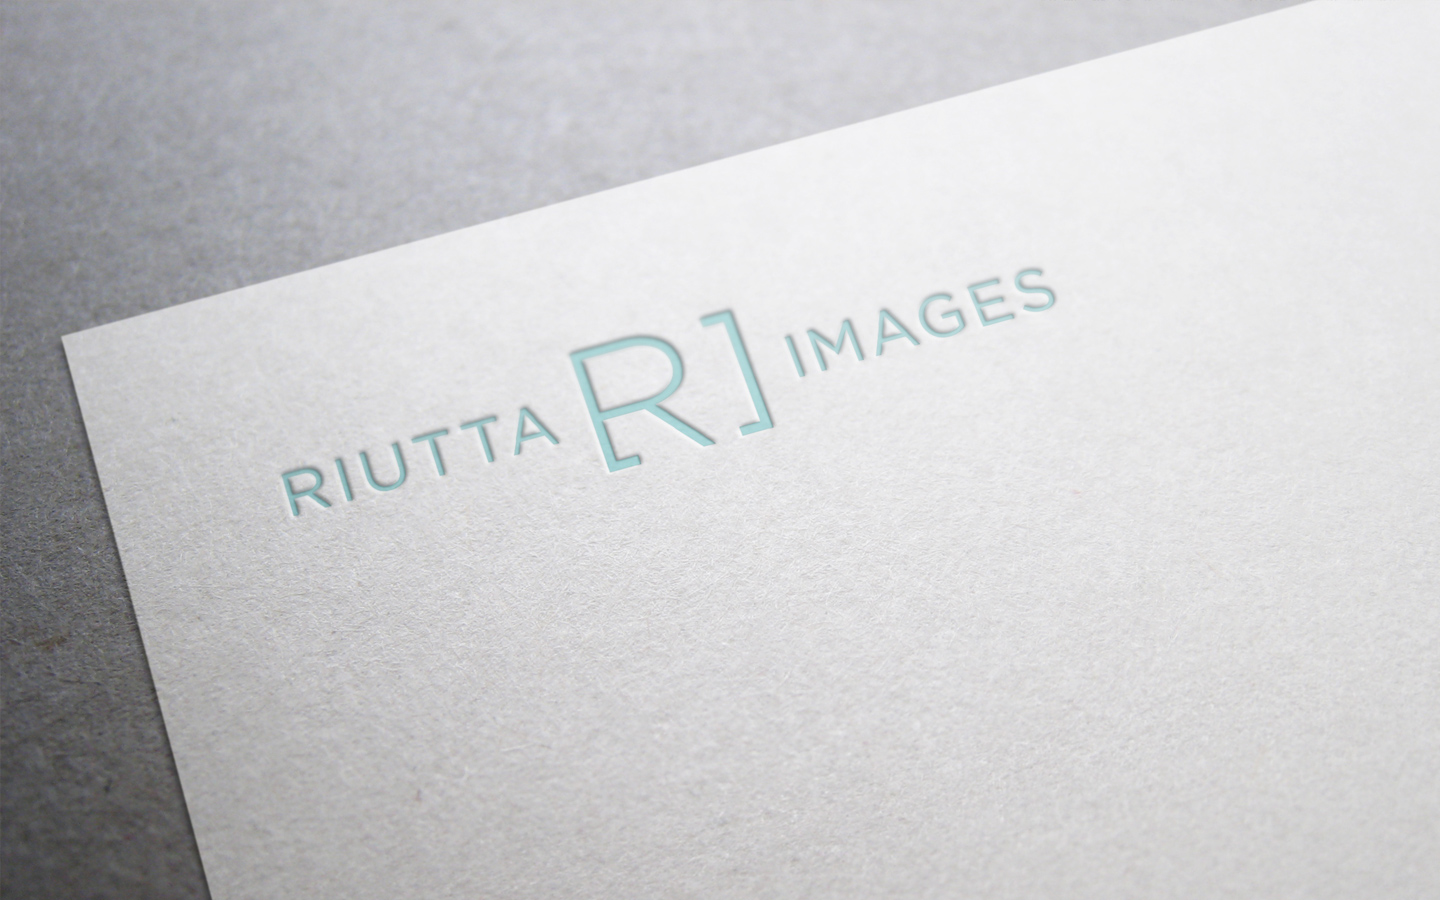 Riutta_images_application18